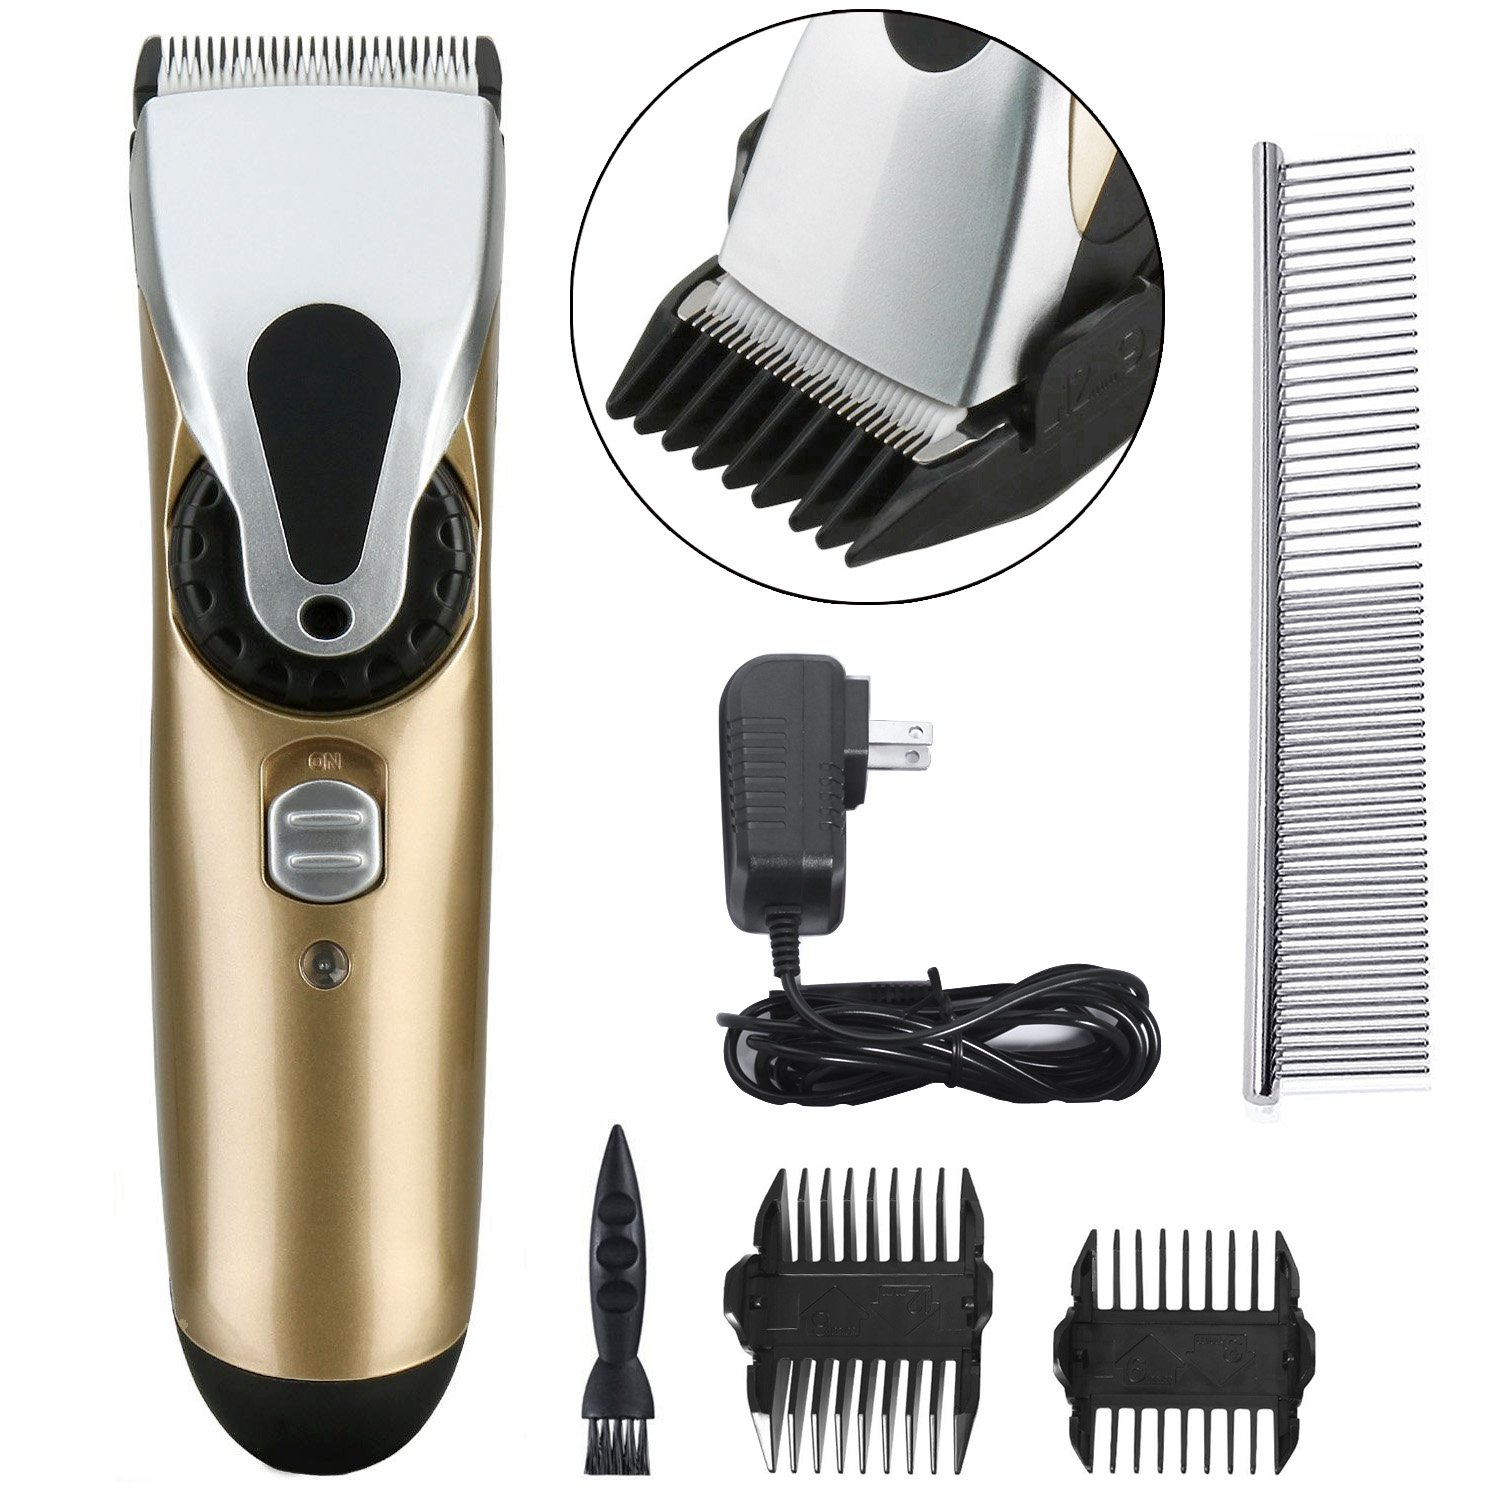 FlyCreat Dogs Grooming Clippers, Professional Electric Low Noise Rechargeable Cordless Dogs and Cats Hair Clippers Grooming Set for Large, Medium, Small Pets FlyJeat